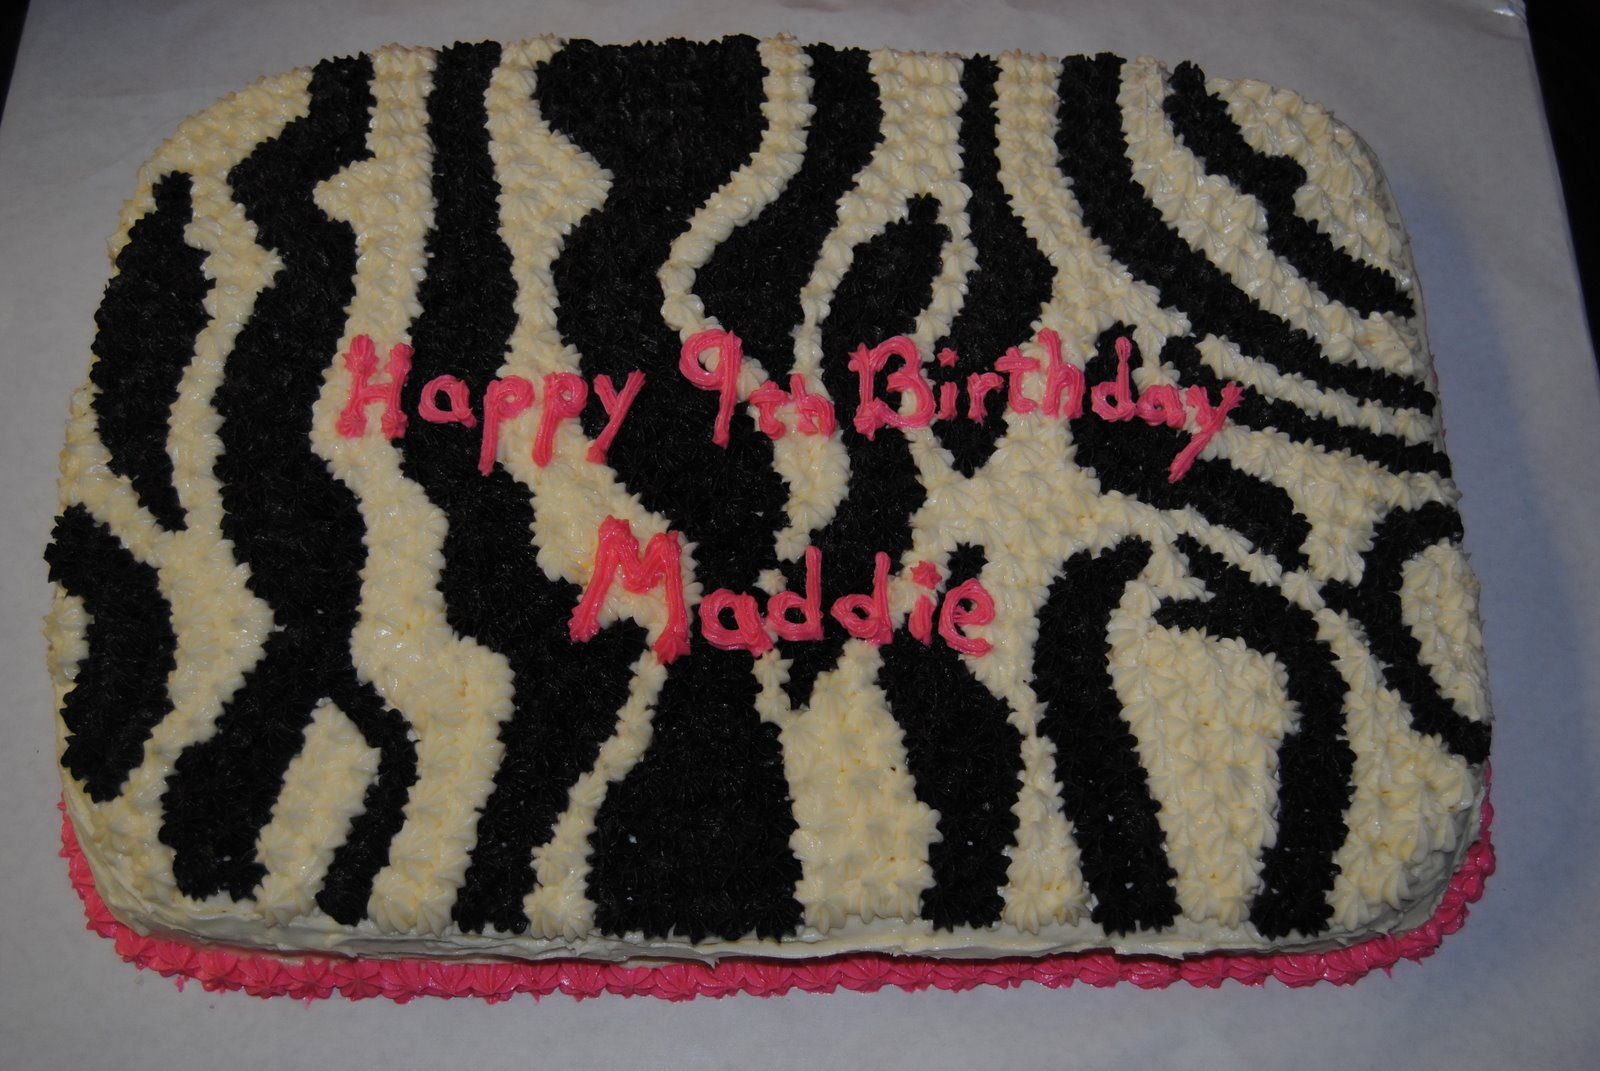 Zebra Design Birthday Cake : Late Night Cakes: Maddie s Zebra Print Birthday cake